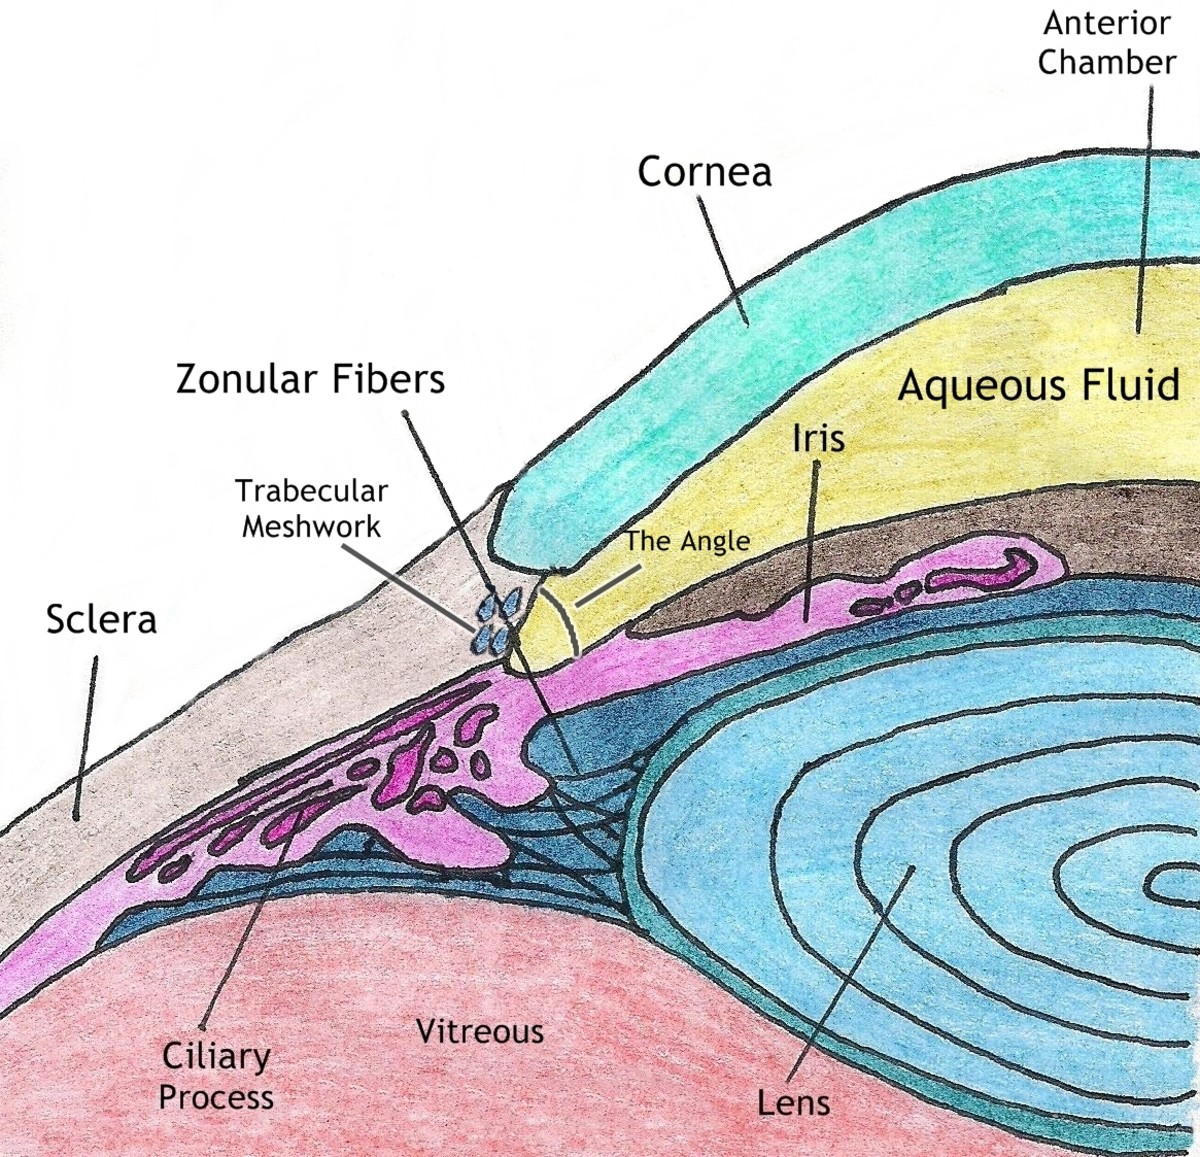 Anatomy of anterior portion of the eye where the lens is located.